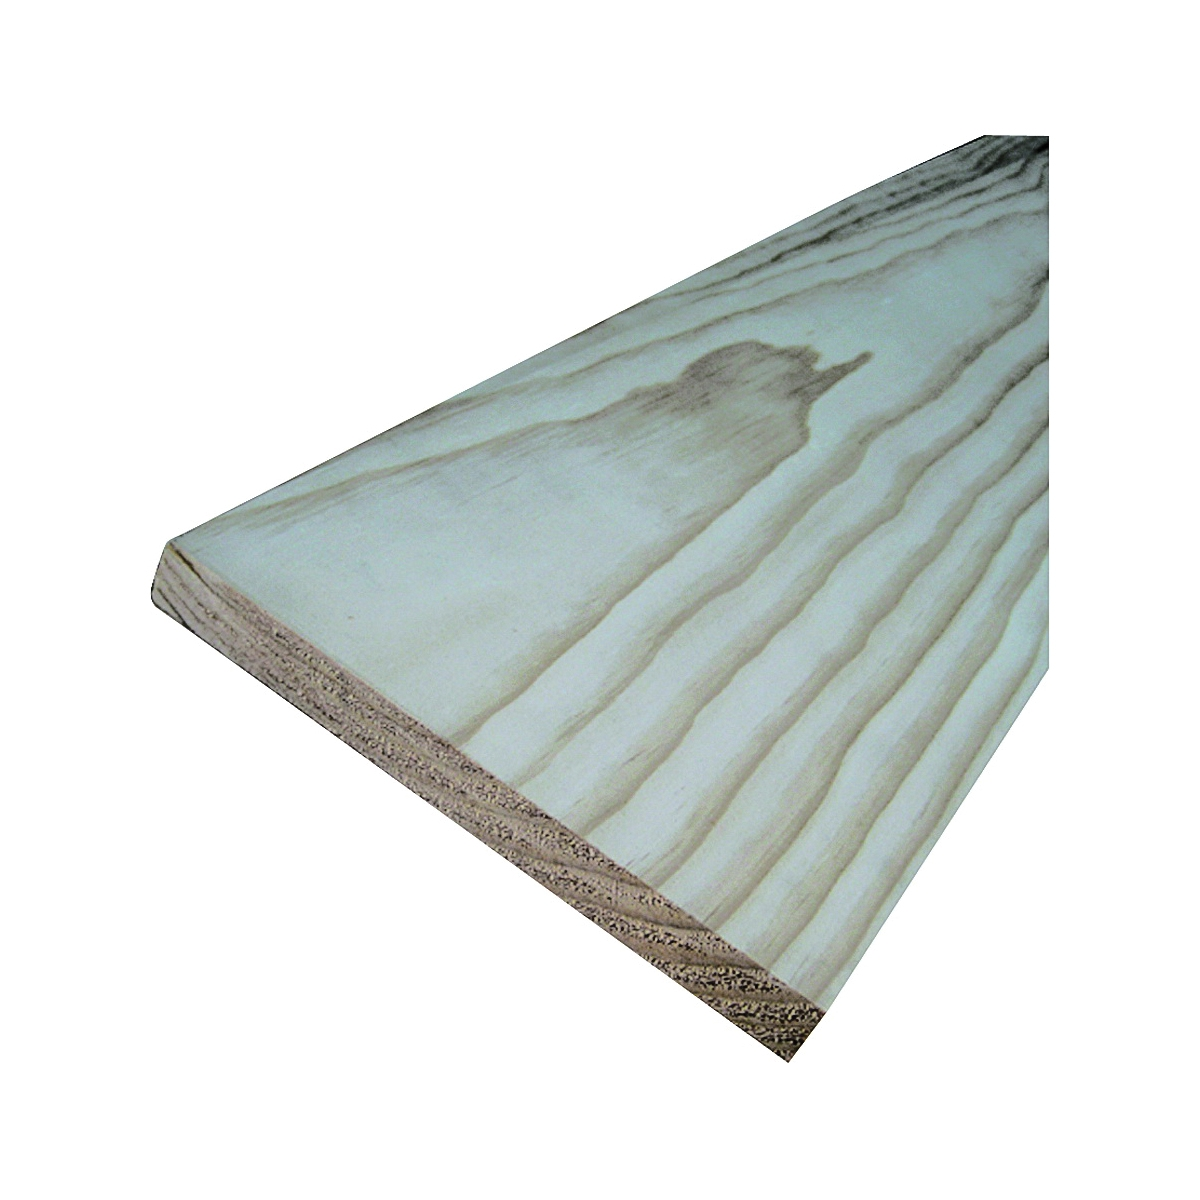 Picture of ALEXANDRIA Moulding Q1X12-20048C Sanded Common Board